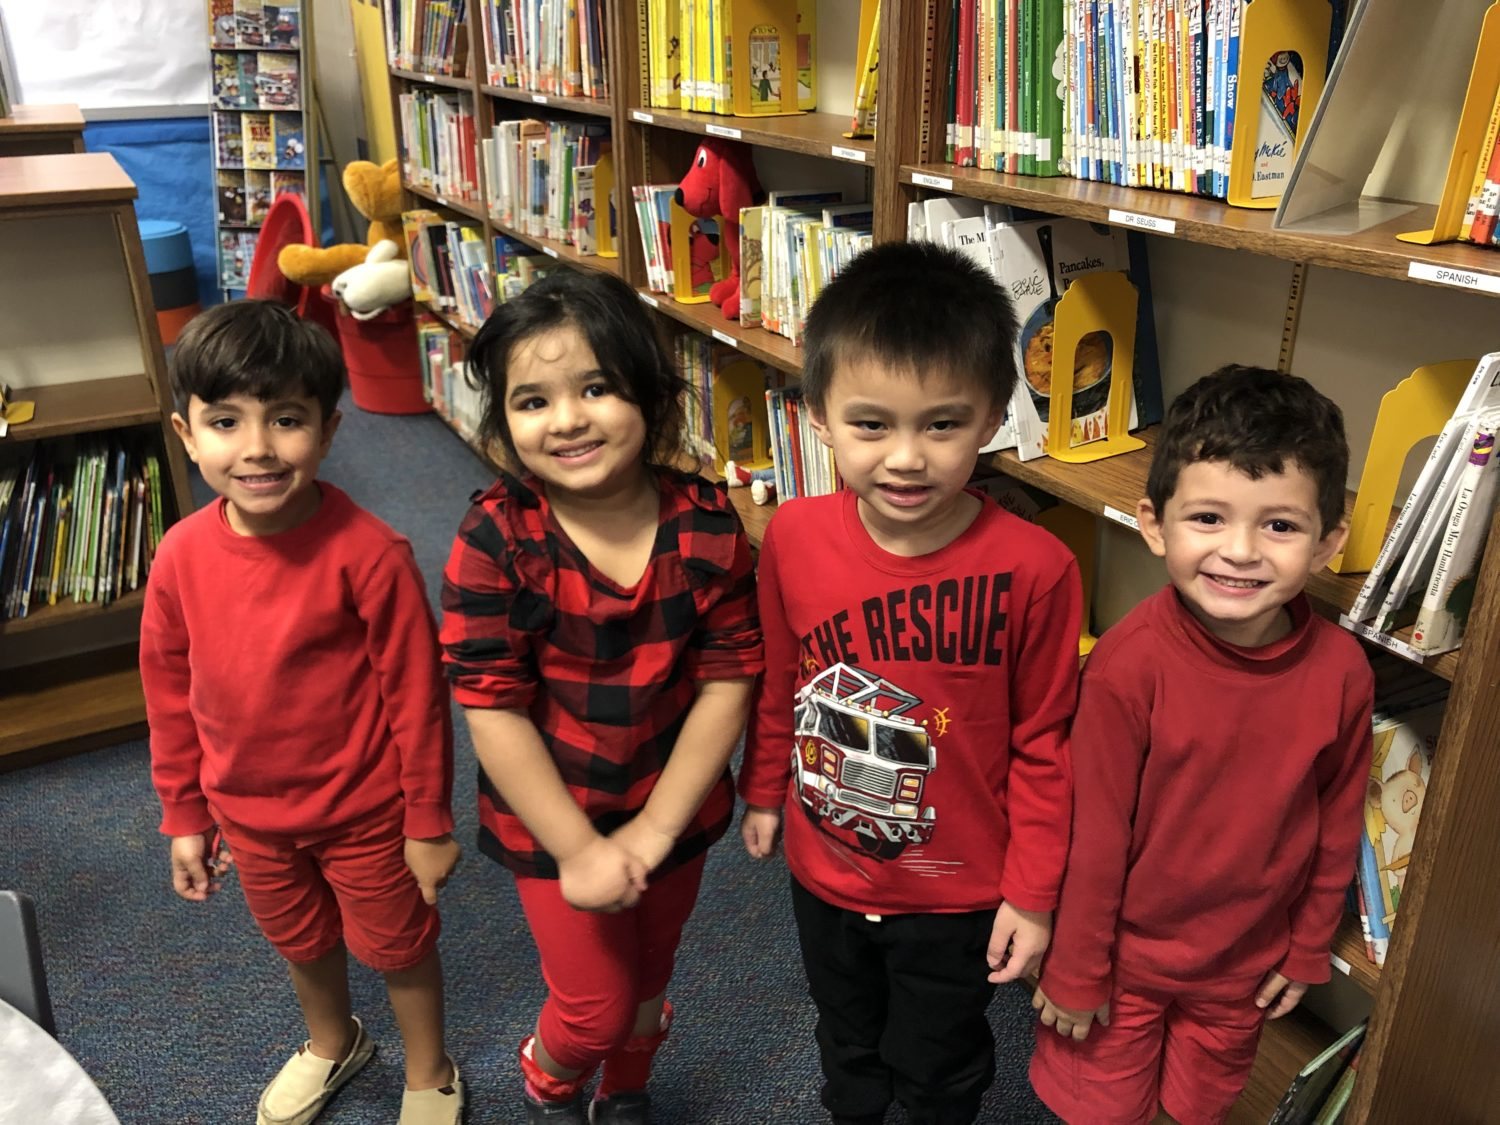 Kids dressed in red